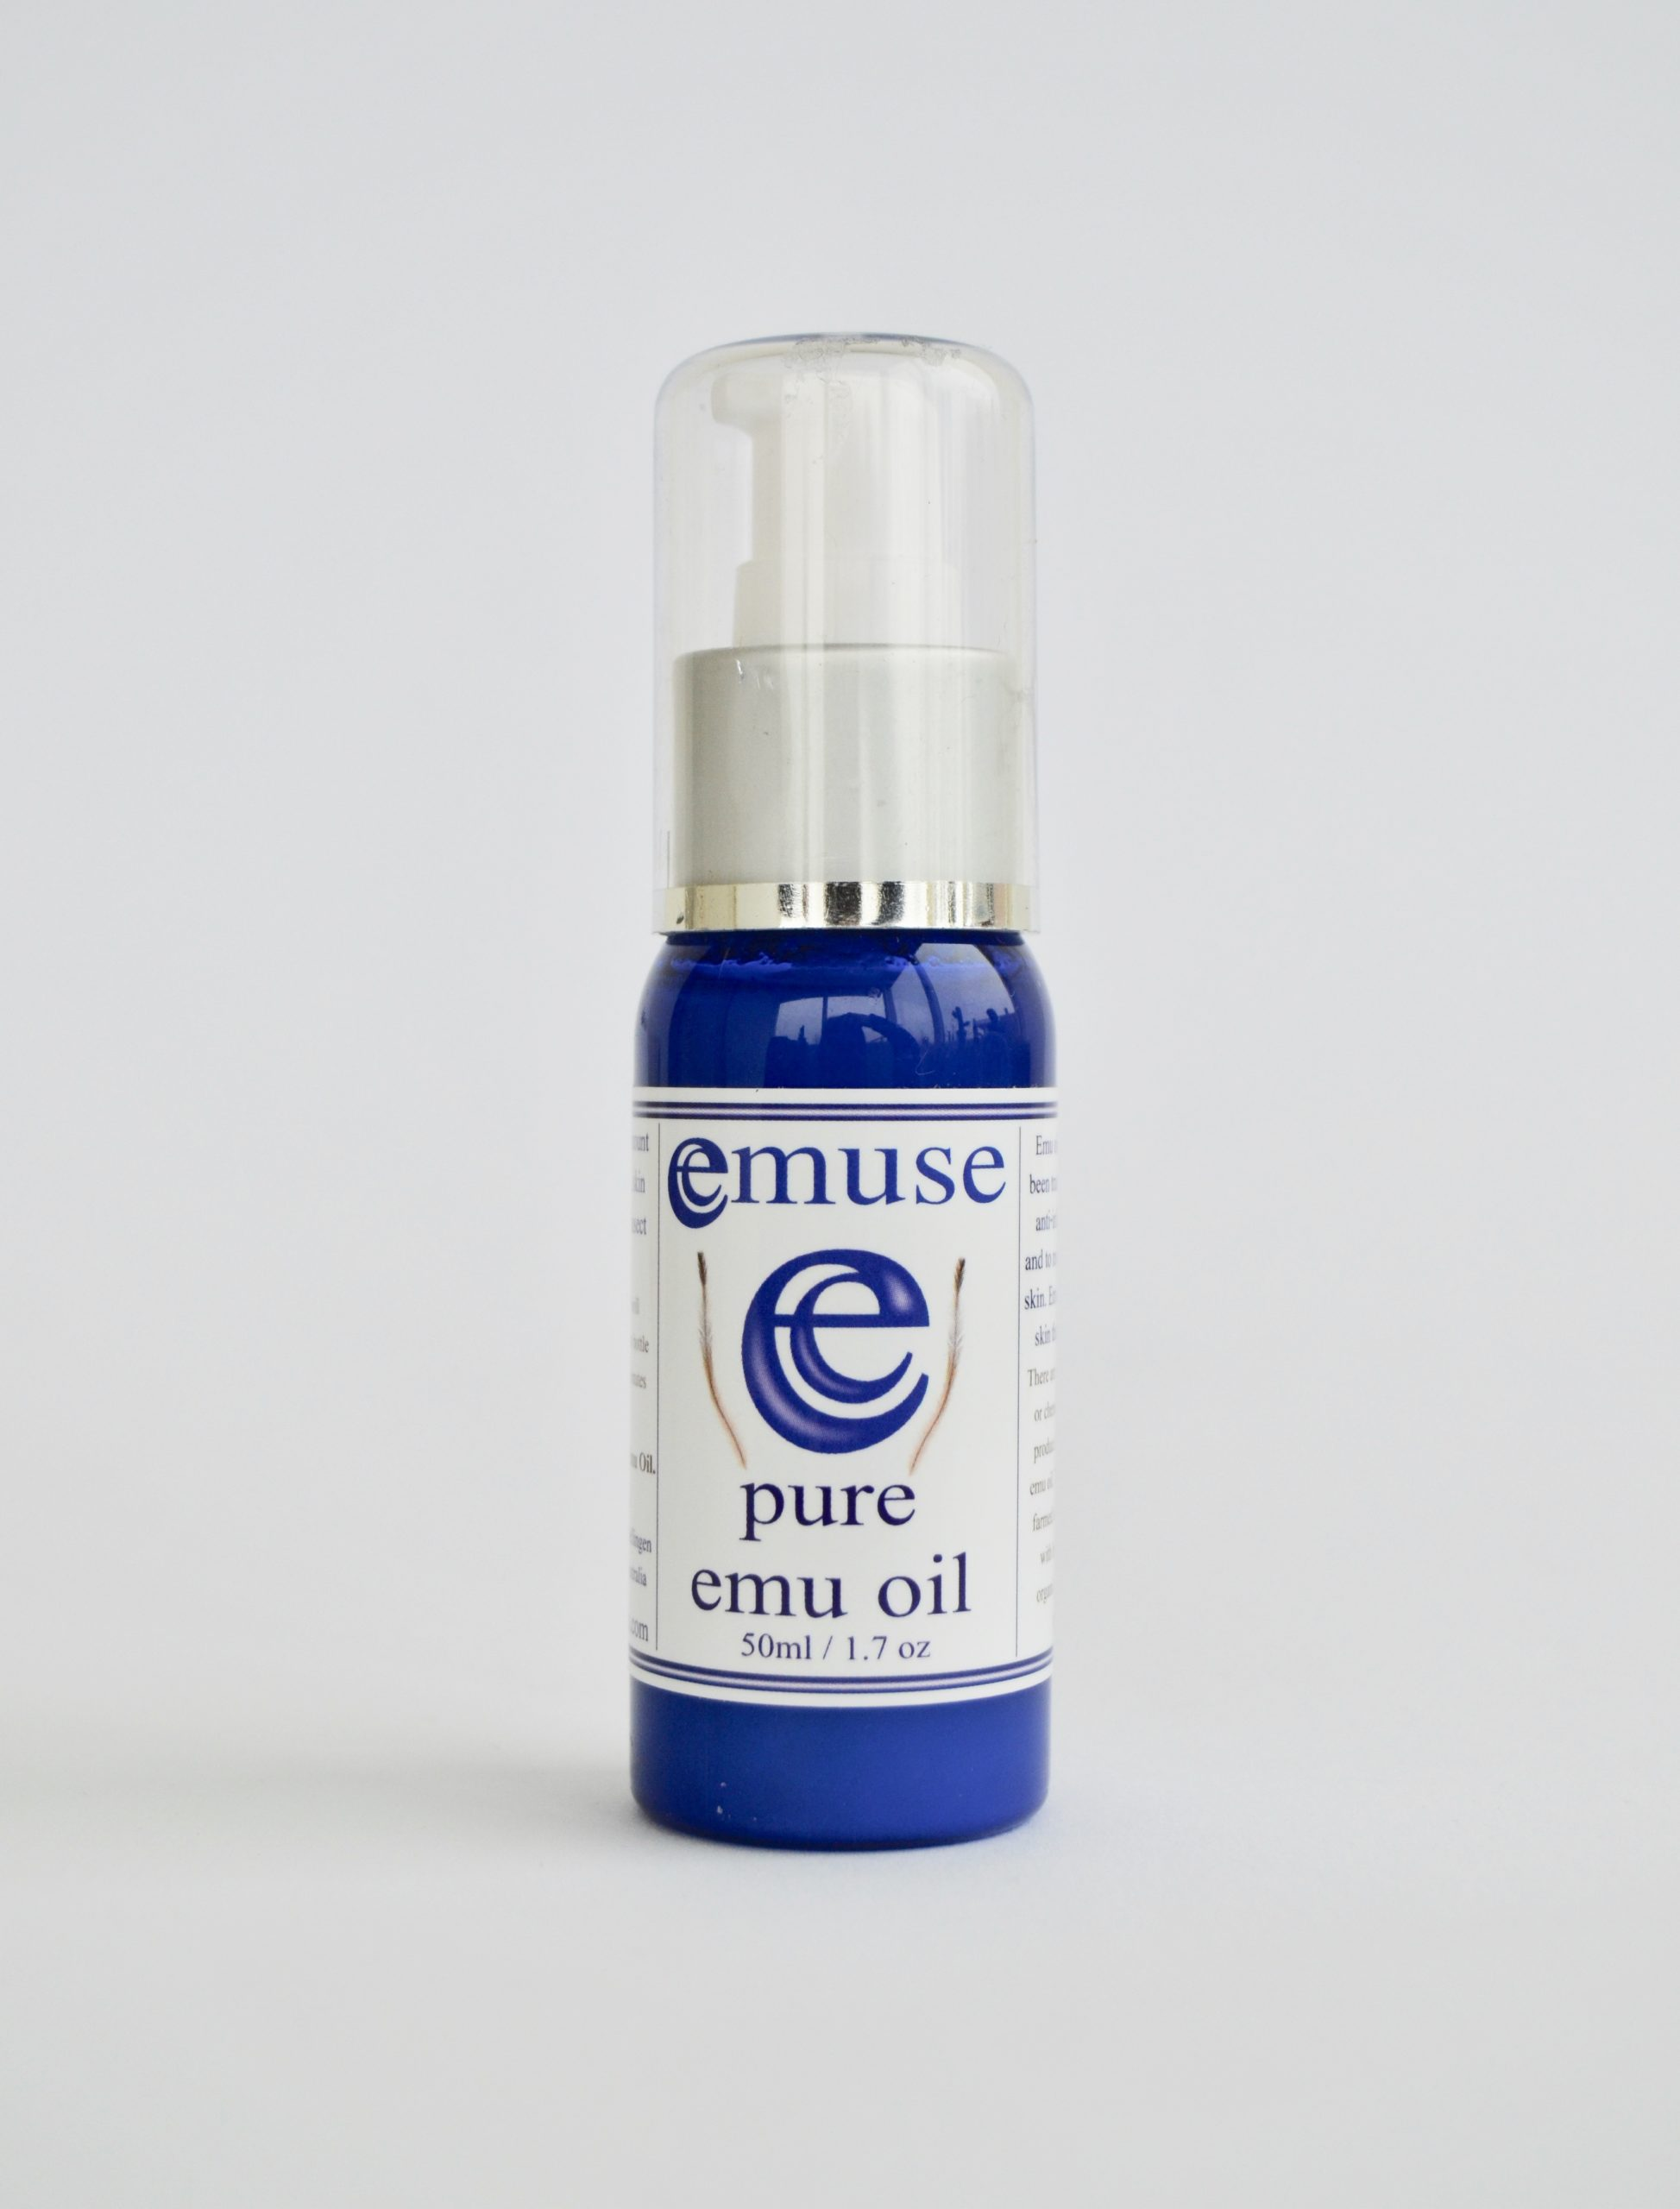 Emuse 100% pure Emoe Olie 50ml